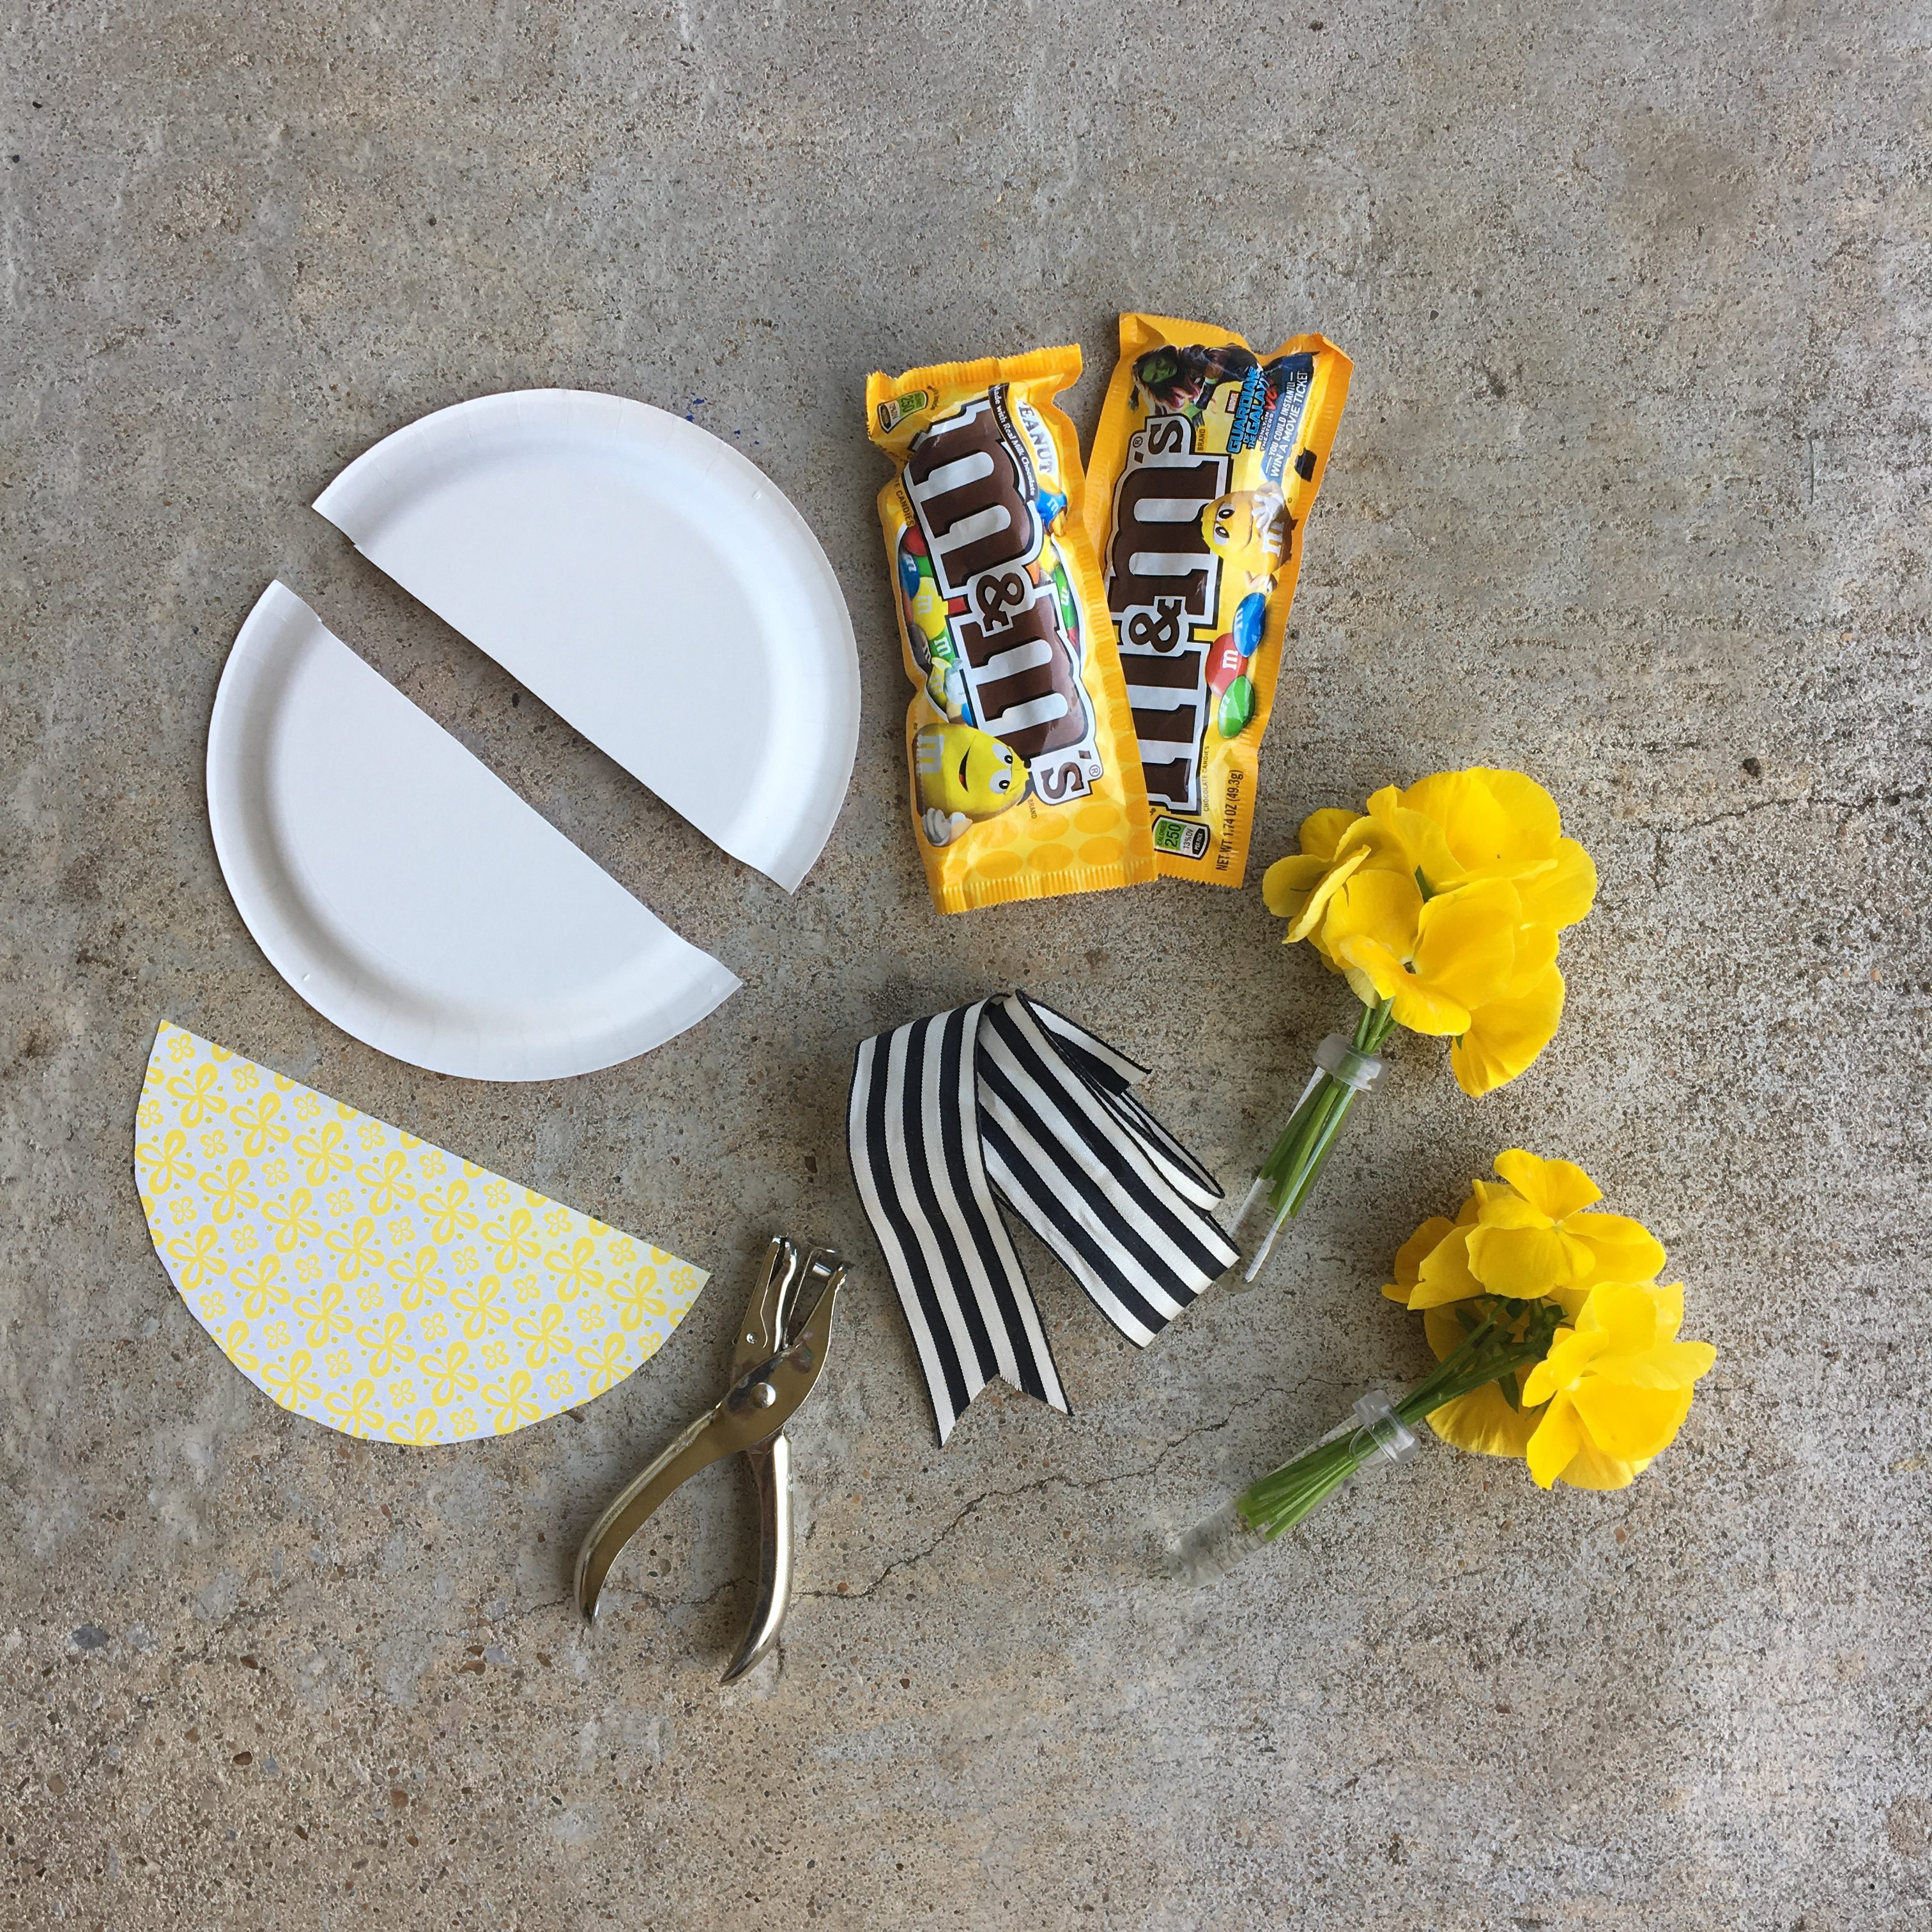 Five ways to make may day baskets the neat nook youll need a small paper plate cut in half a piece of pretty paper cut to the size of one of the halves flowers candies and ribbon mightylinksfo